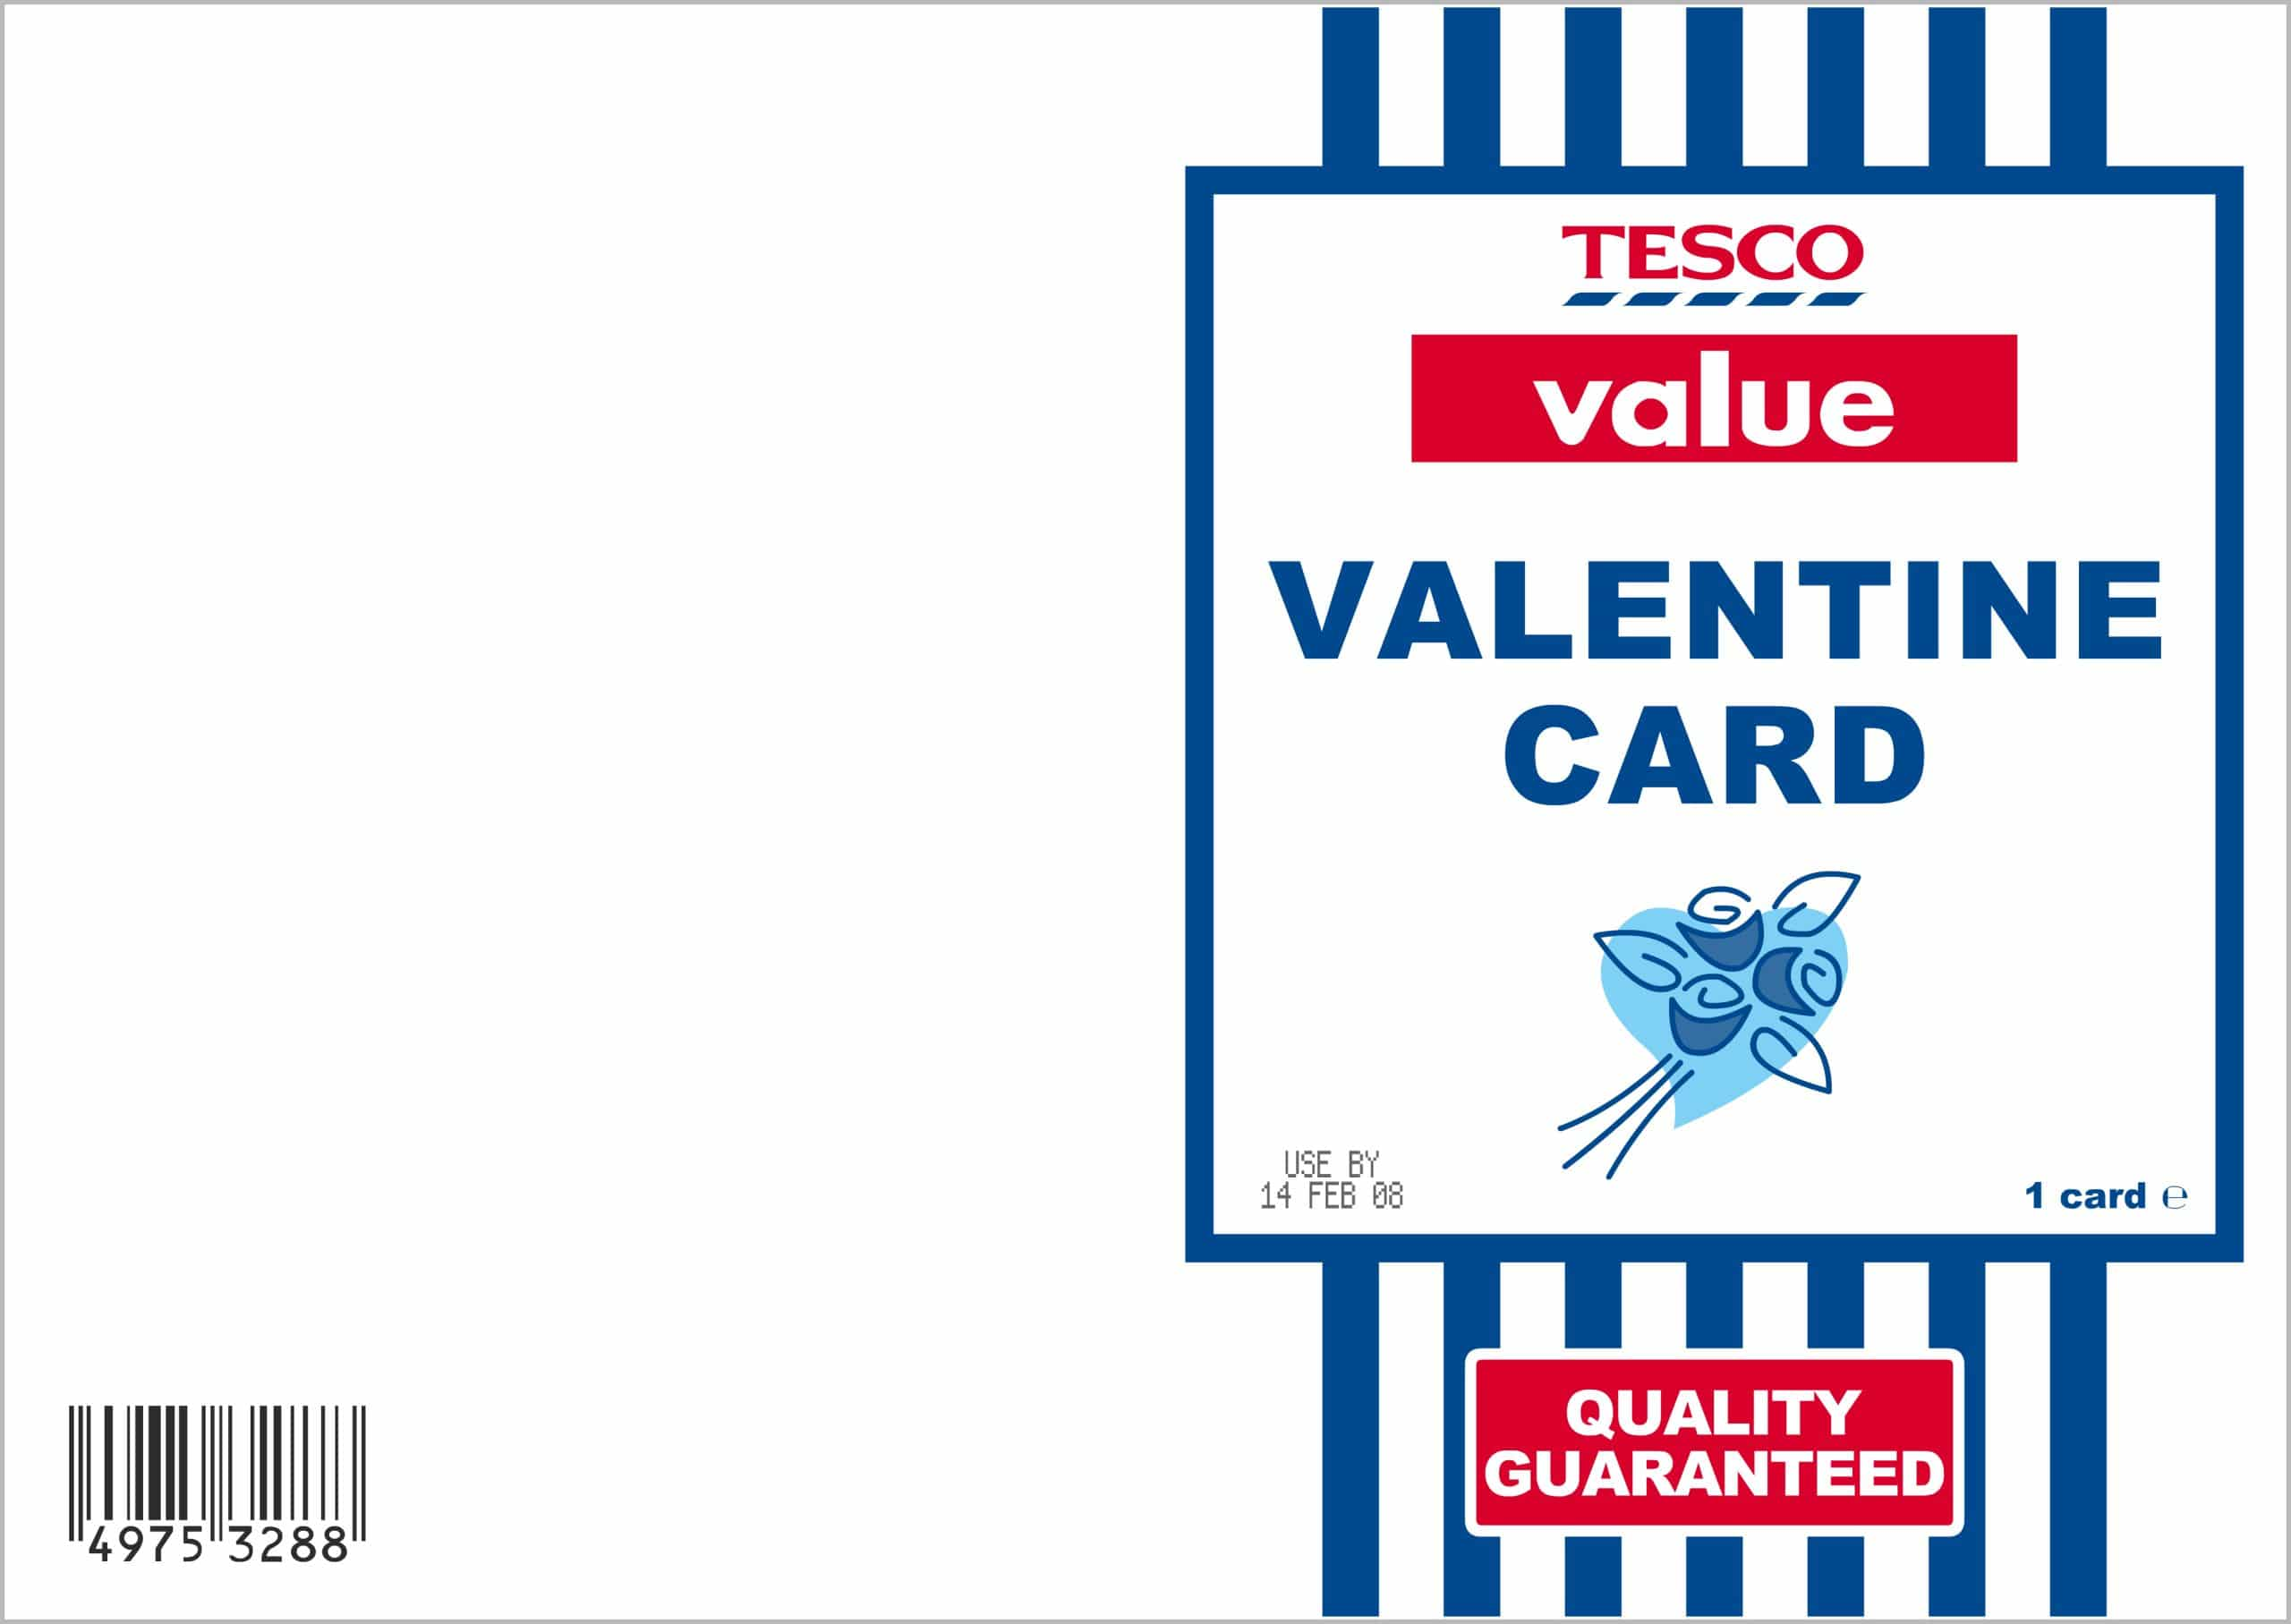 Oh no! You've got no time to get to a card shop for a Valentines or you're skint and can't afford it! No worries, Skint Dad's got your back!